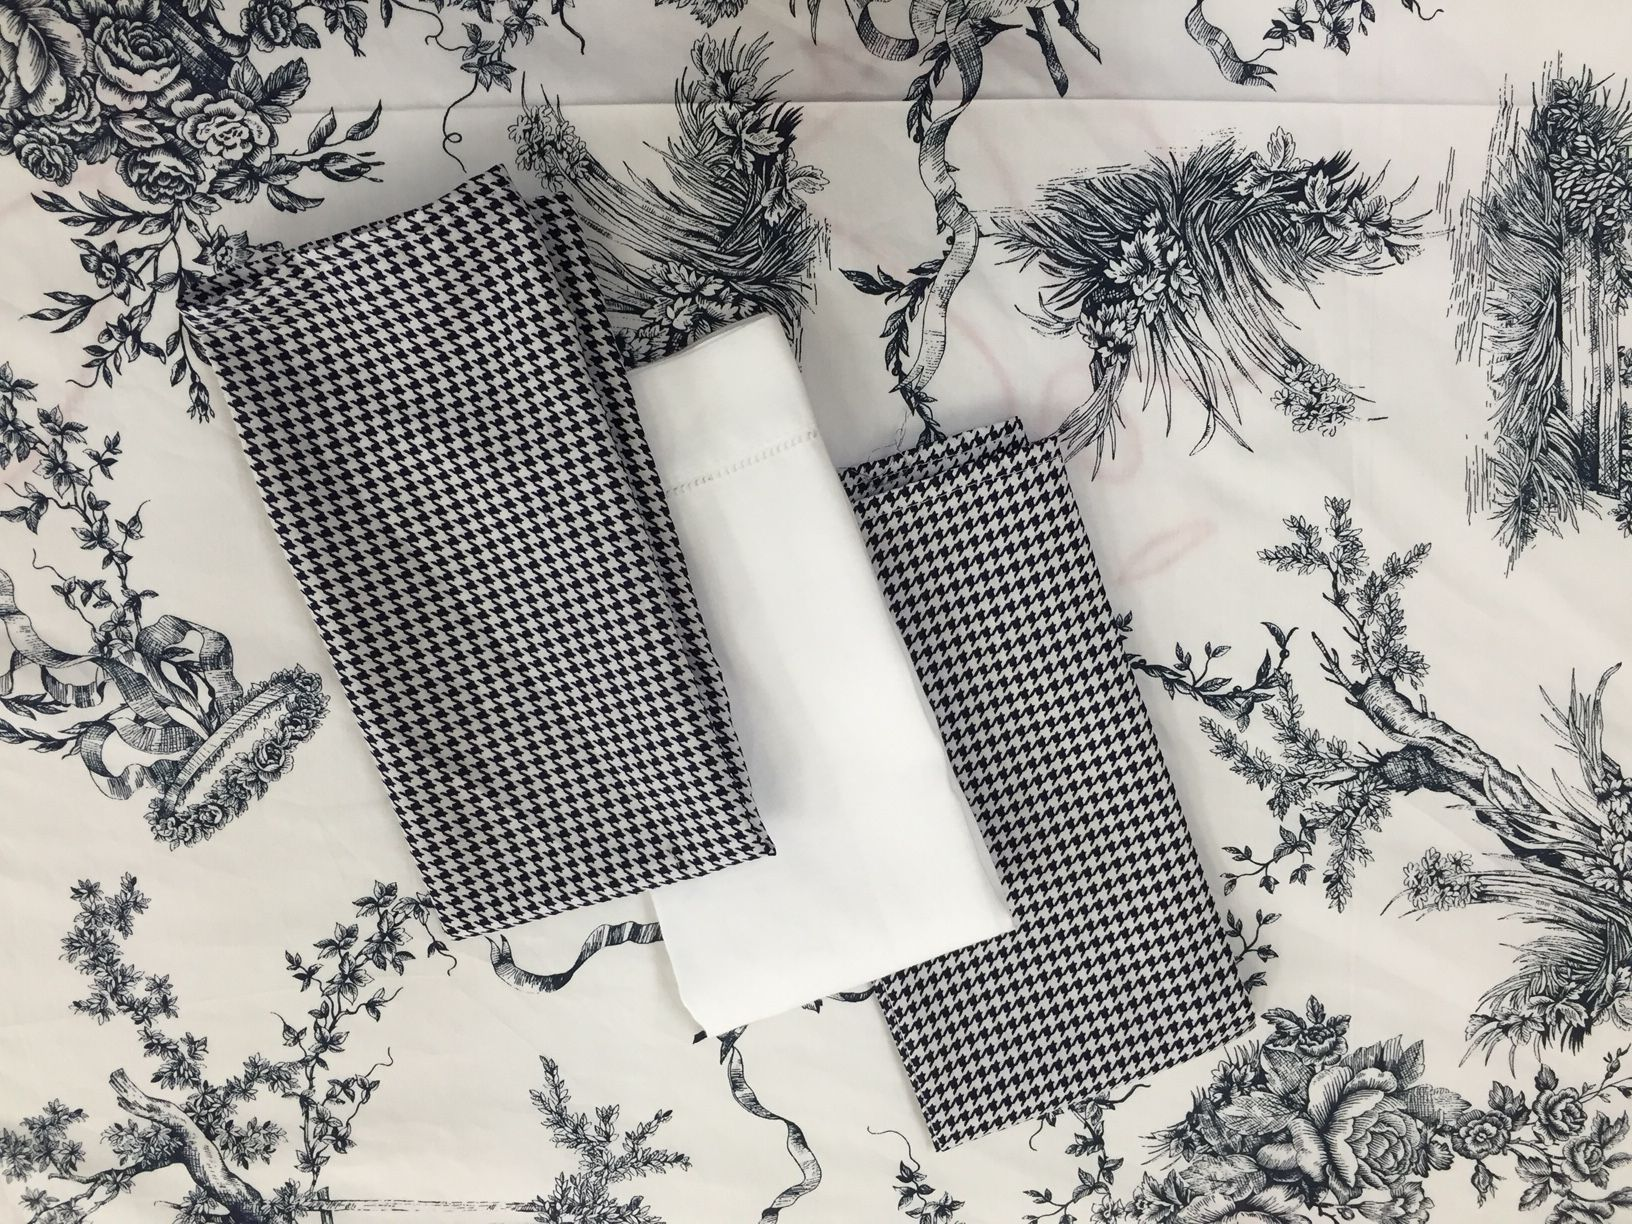 The navy toile cloth works so well with the dark navy houndstooth napkins